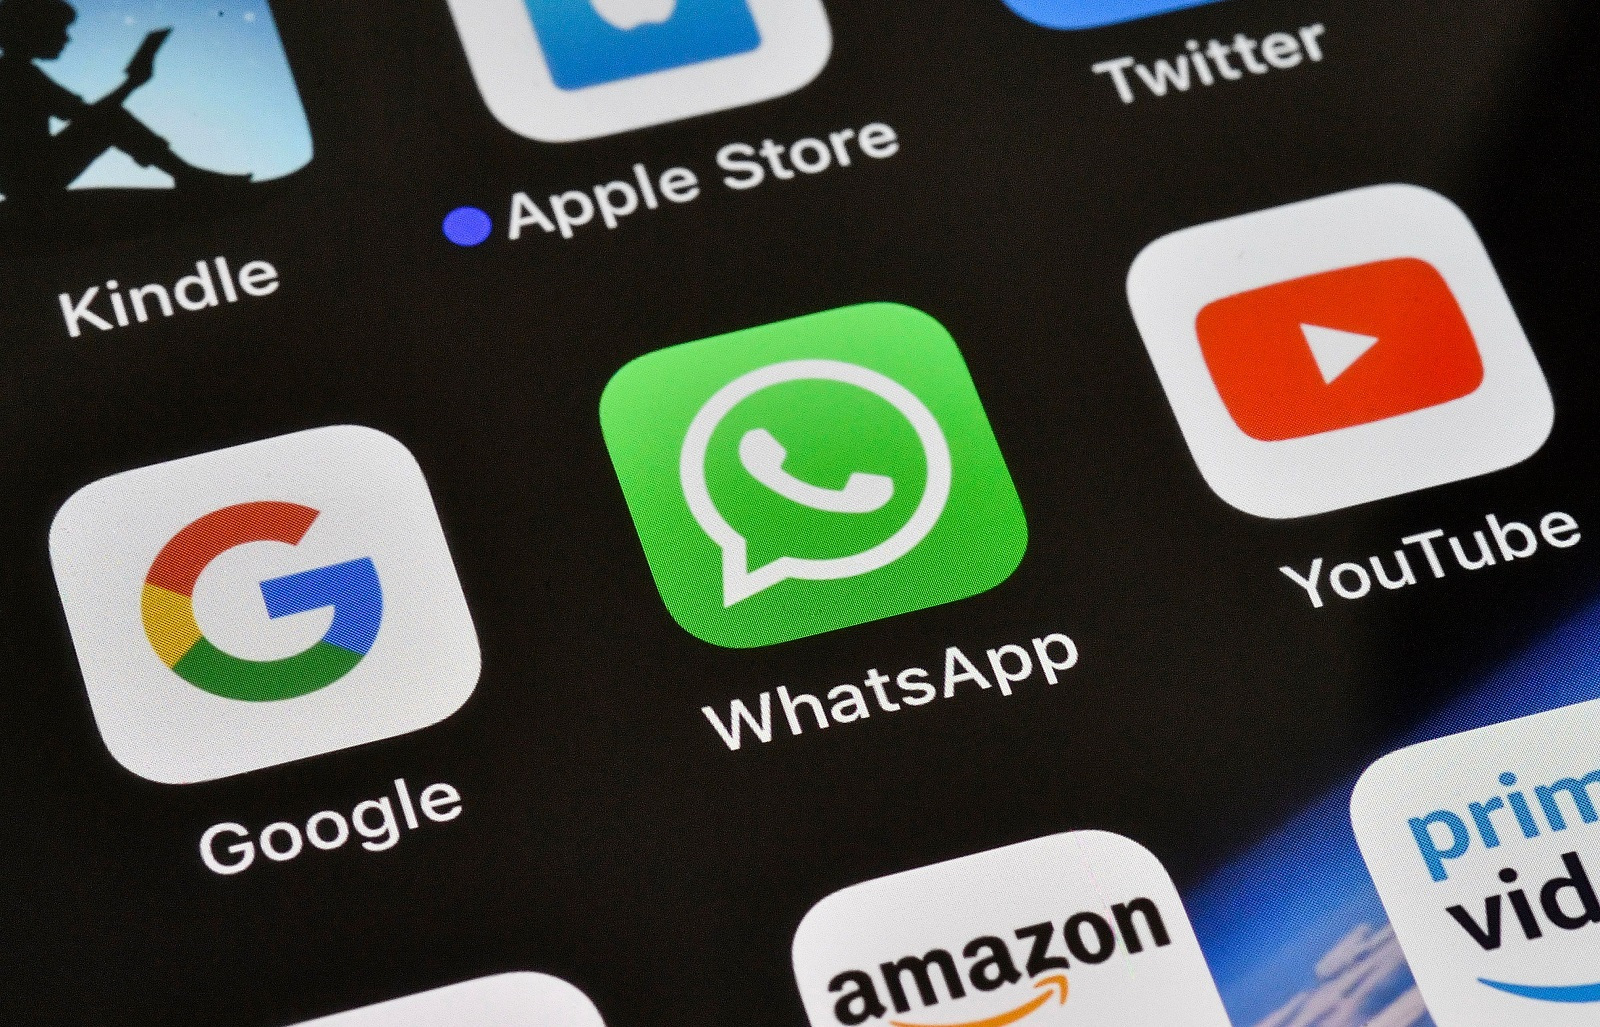 WhatsApp is about to get a huge upgrade that'll let you use the same account across platforms